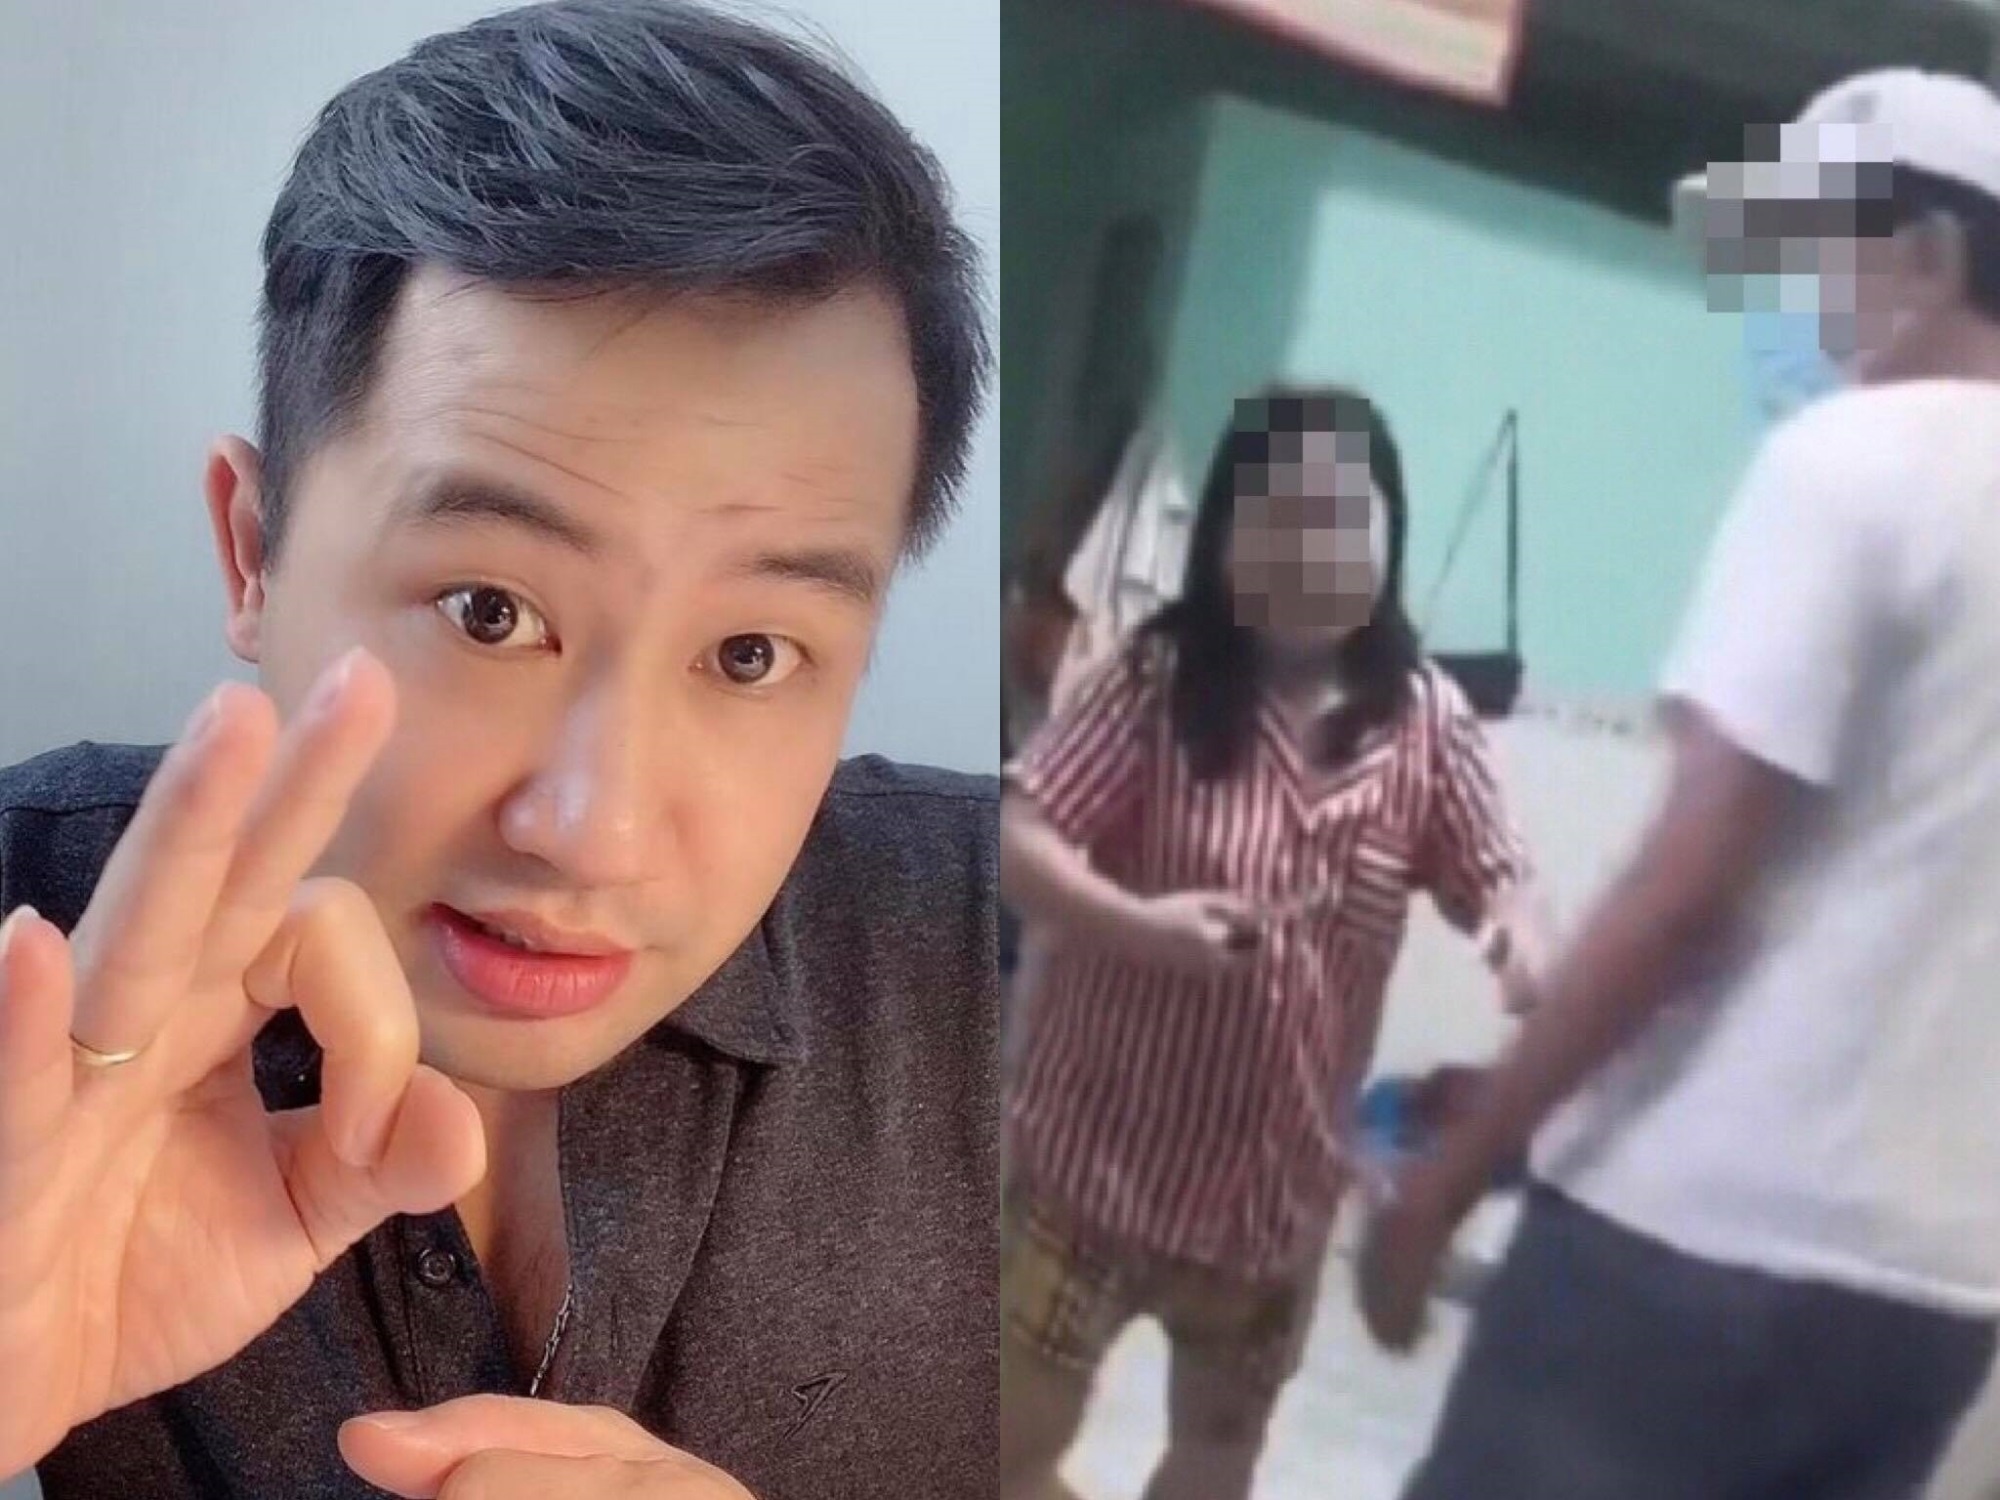 Truong Quoc Anh 1